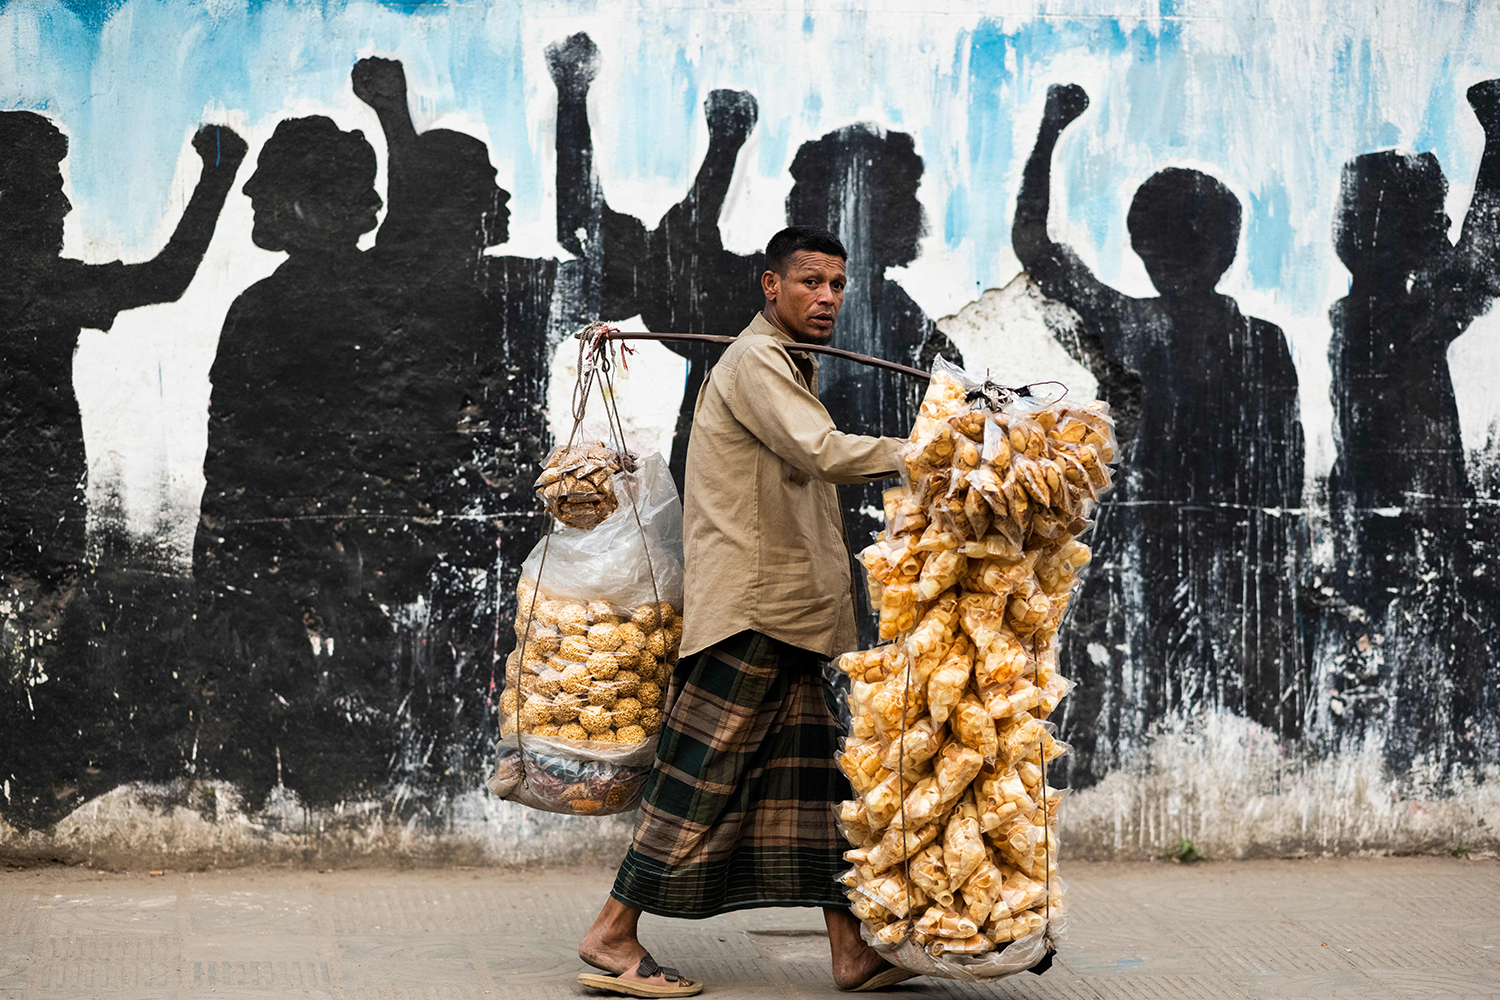 A snack vendor looks for customers along a street in Dhaka, Bangladesh, on March 2. JEWEL SAMAD/AFP via Getty Images